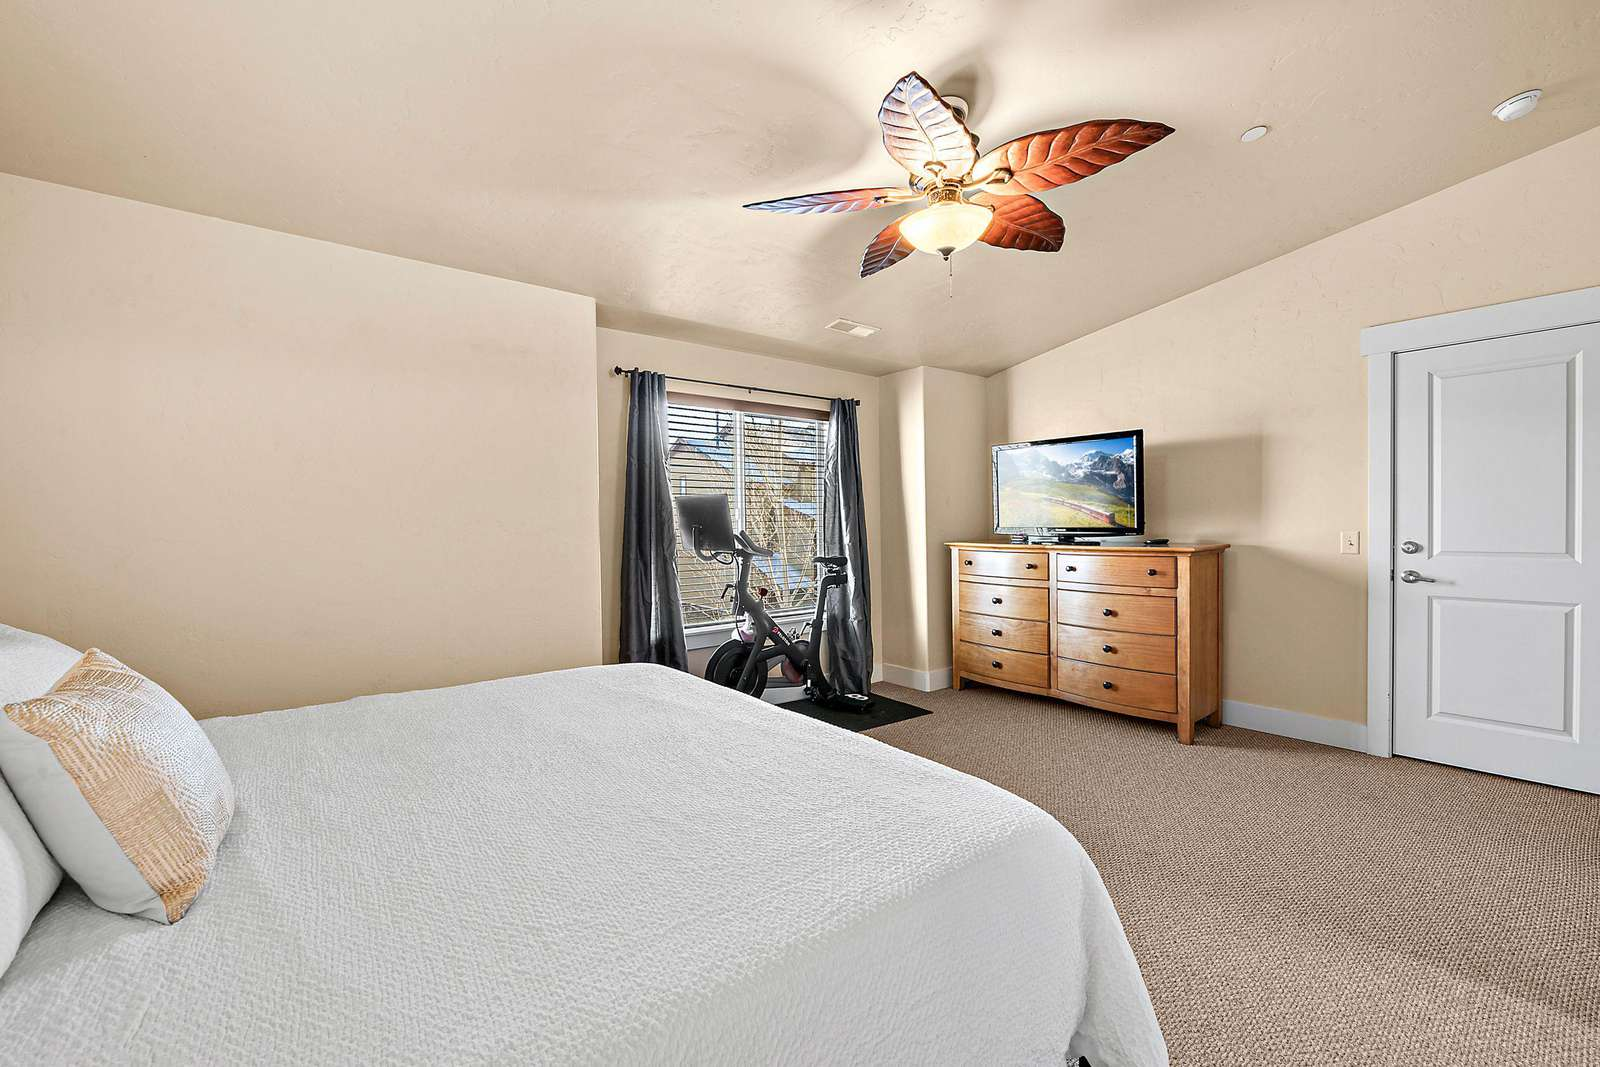 Master bedroom features exercise bike and TV